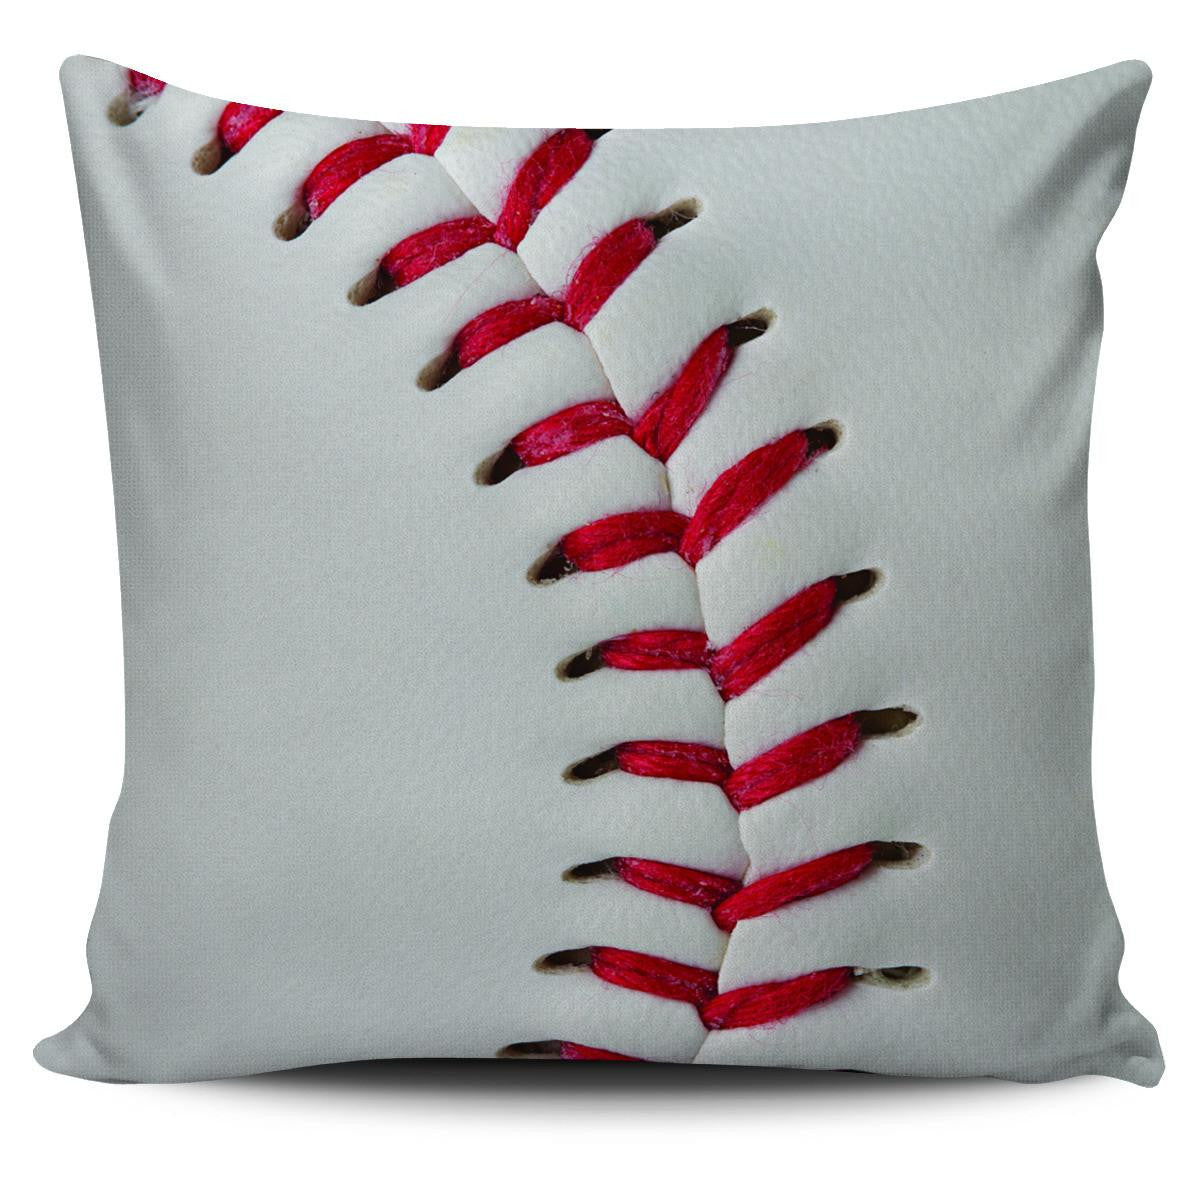 "Baseball Fan 18"" Pillowcase Collection"